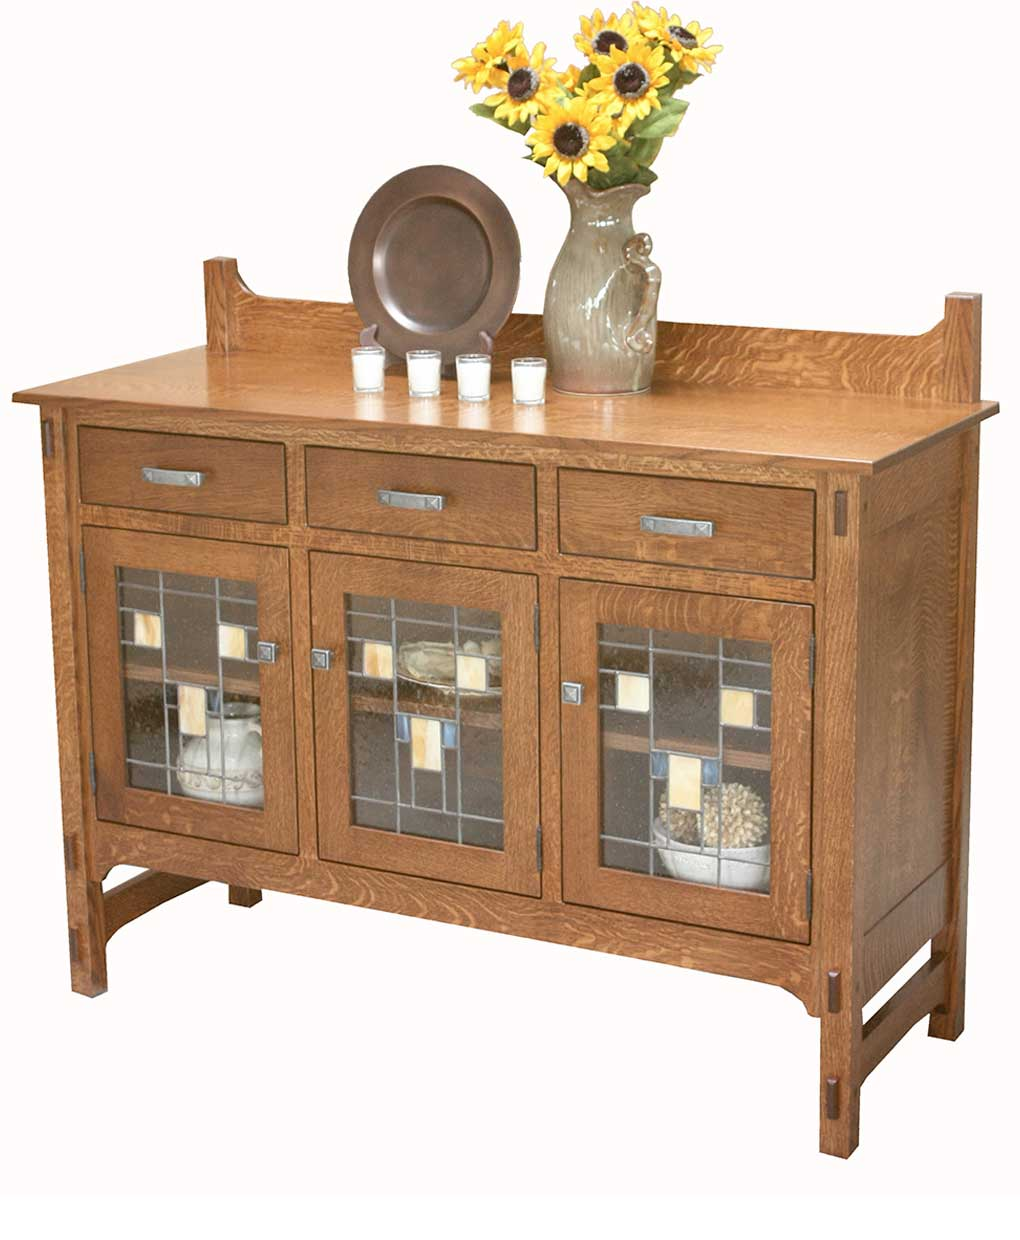 Glenwood sideboard glass front amish direct furniture for Sideboard glasfront